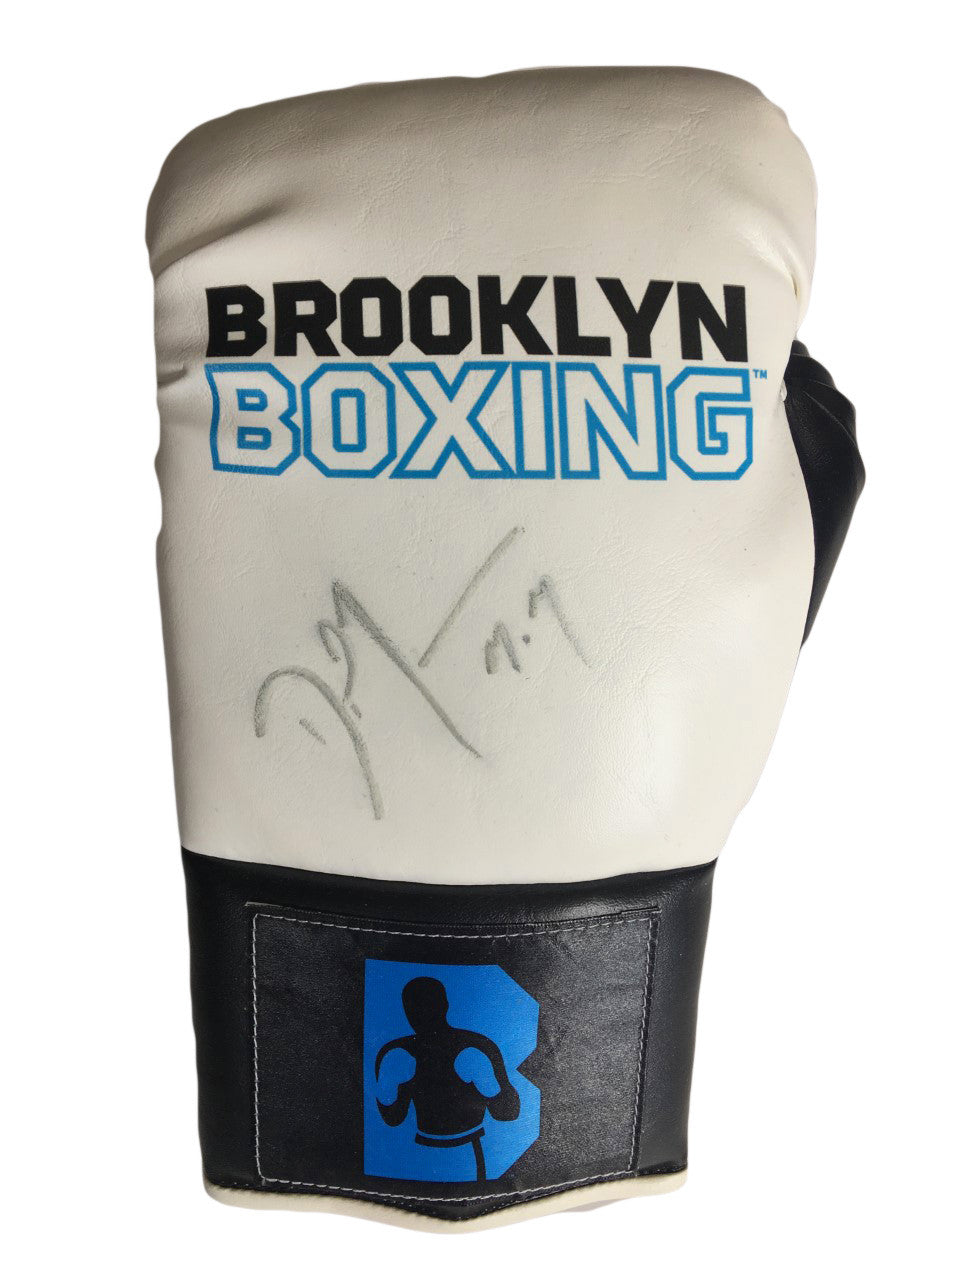 Danny Jacobs Autographed Brooklyn Boxing Glove with a Silver Marker.